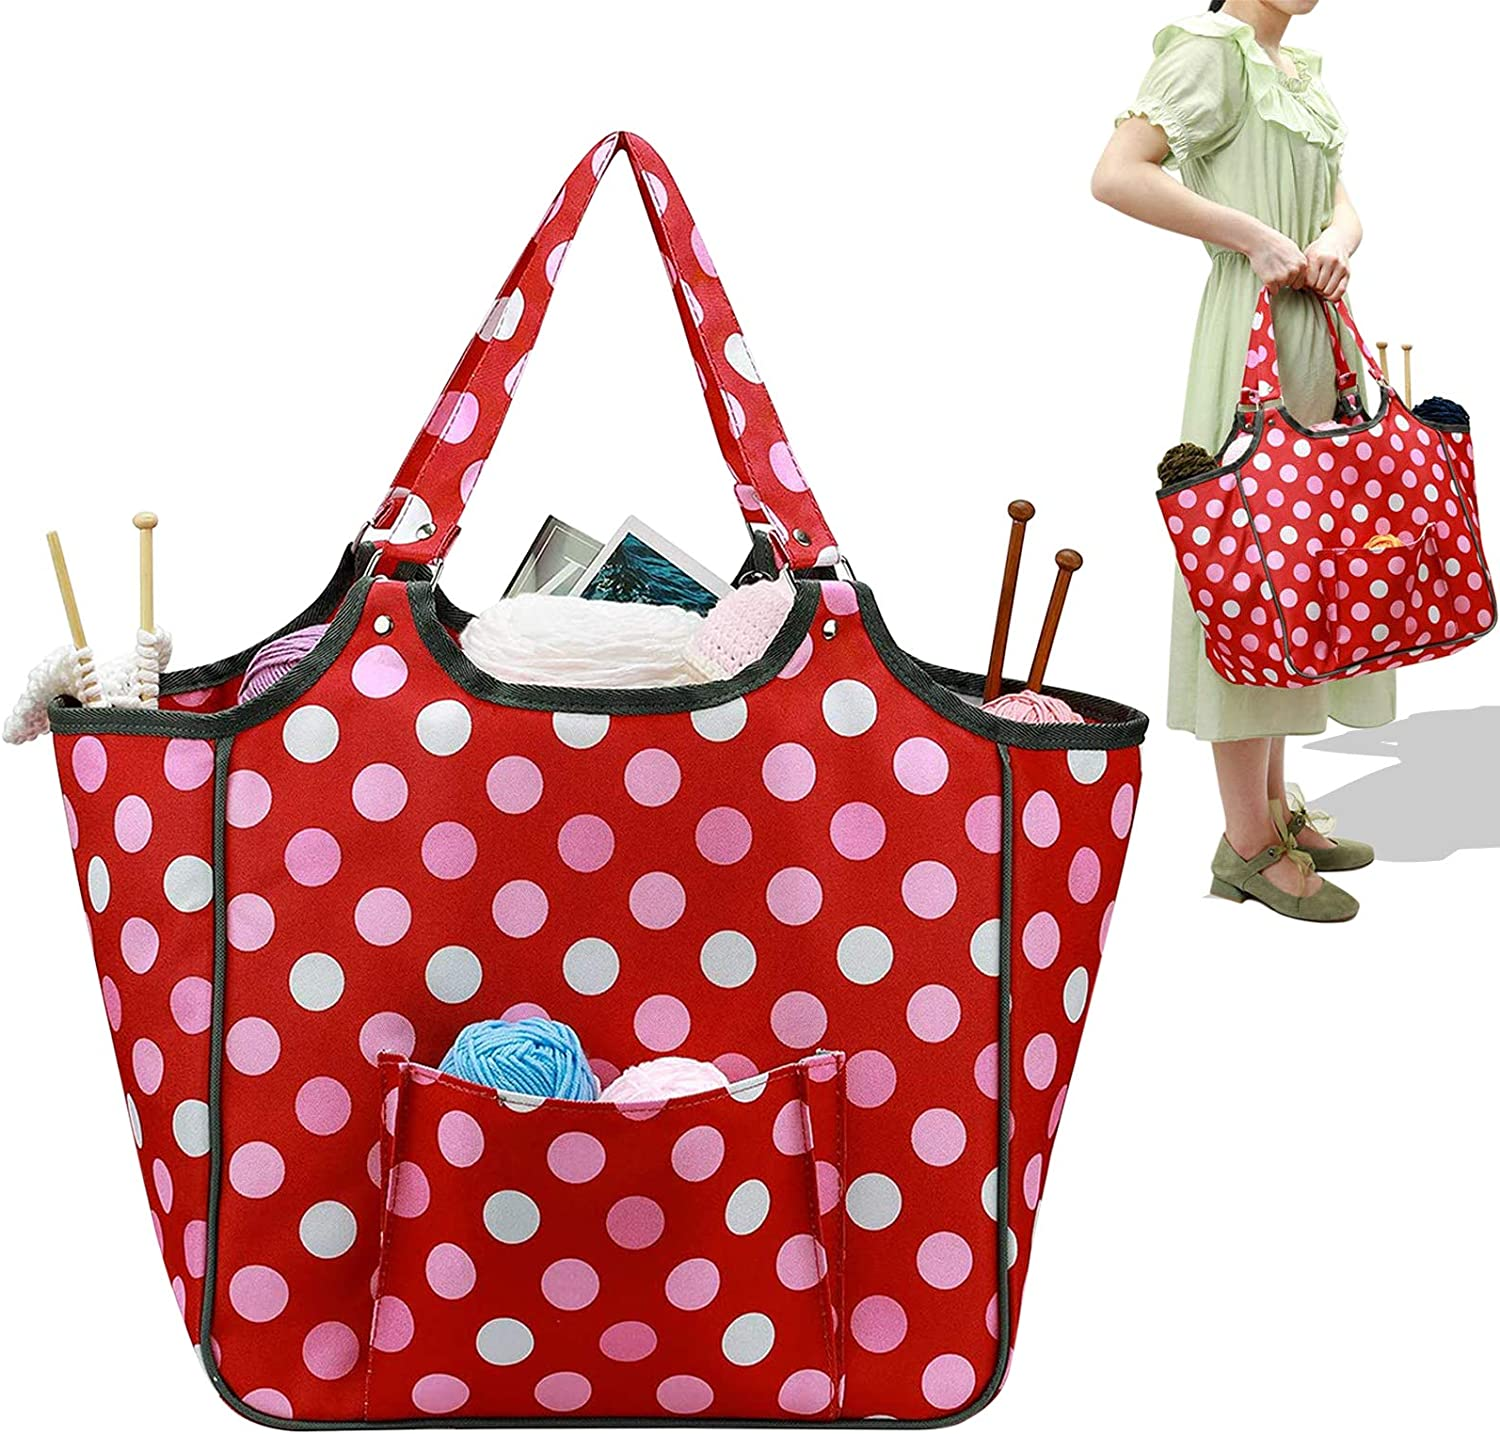 Coopay Yarn Storage Tote Knitting Large Organ Daily bargain sale Capacity Special price Bag